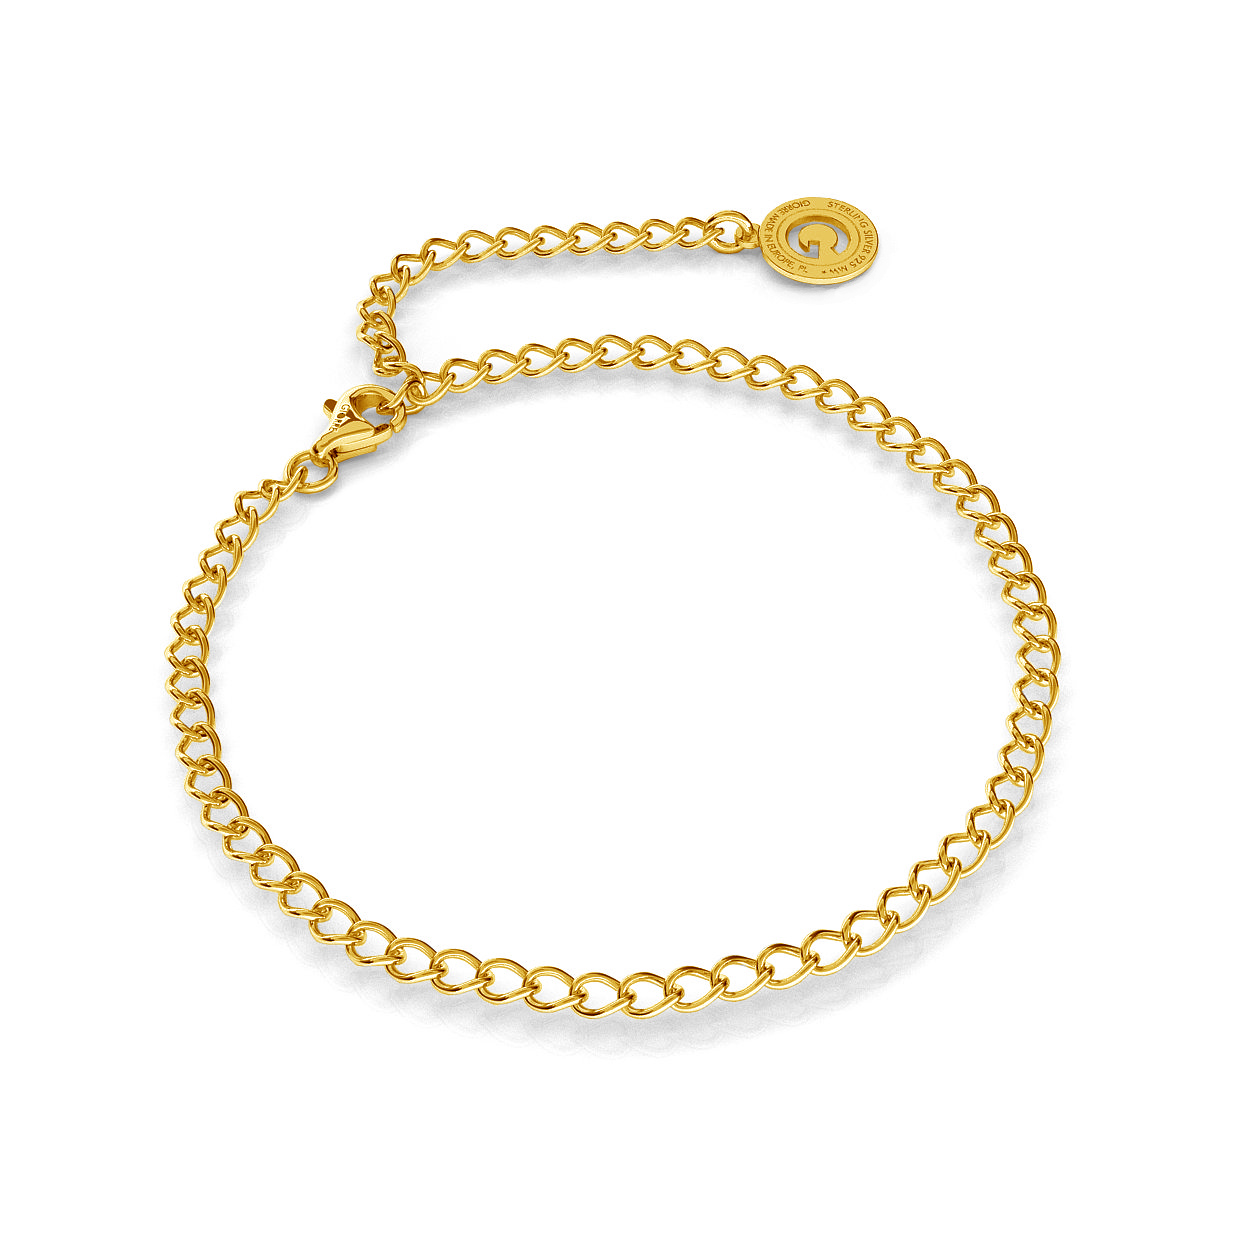 SILVER BRACELET ROMBO 24 CM, GOLD PLATED (YELLOW GOLD)